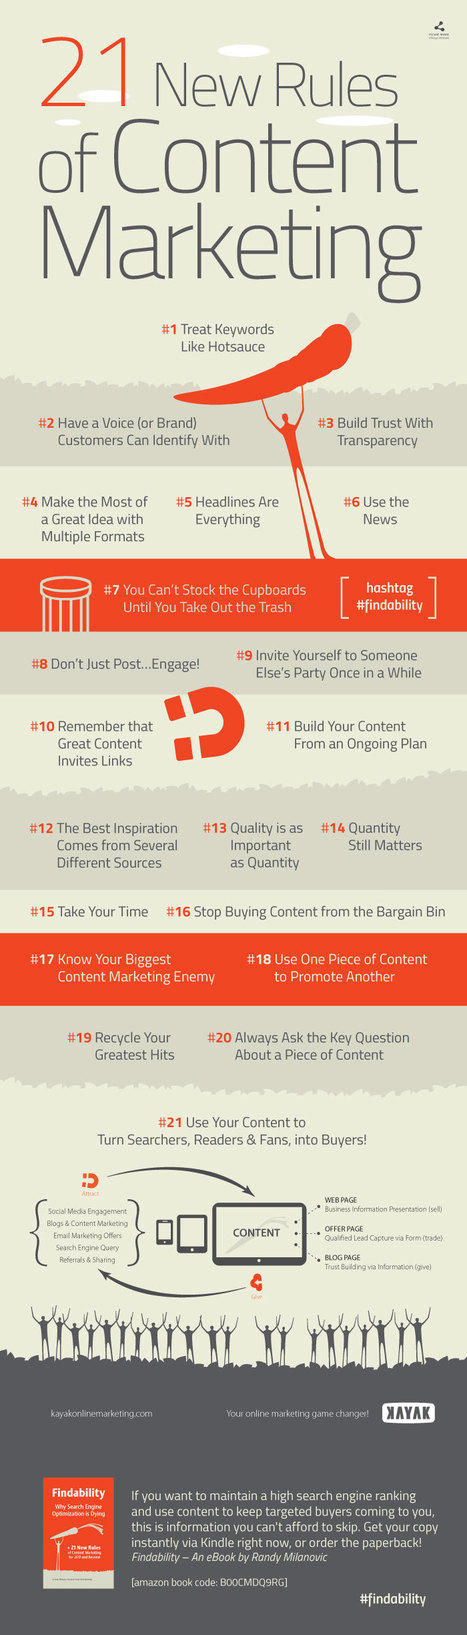 The 21 New Rules of Content Marketing [INFOGRAPHIC] | Global Growth Relations | Scoop.it